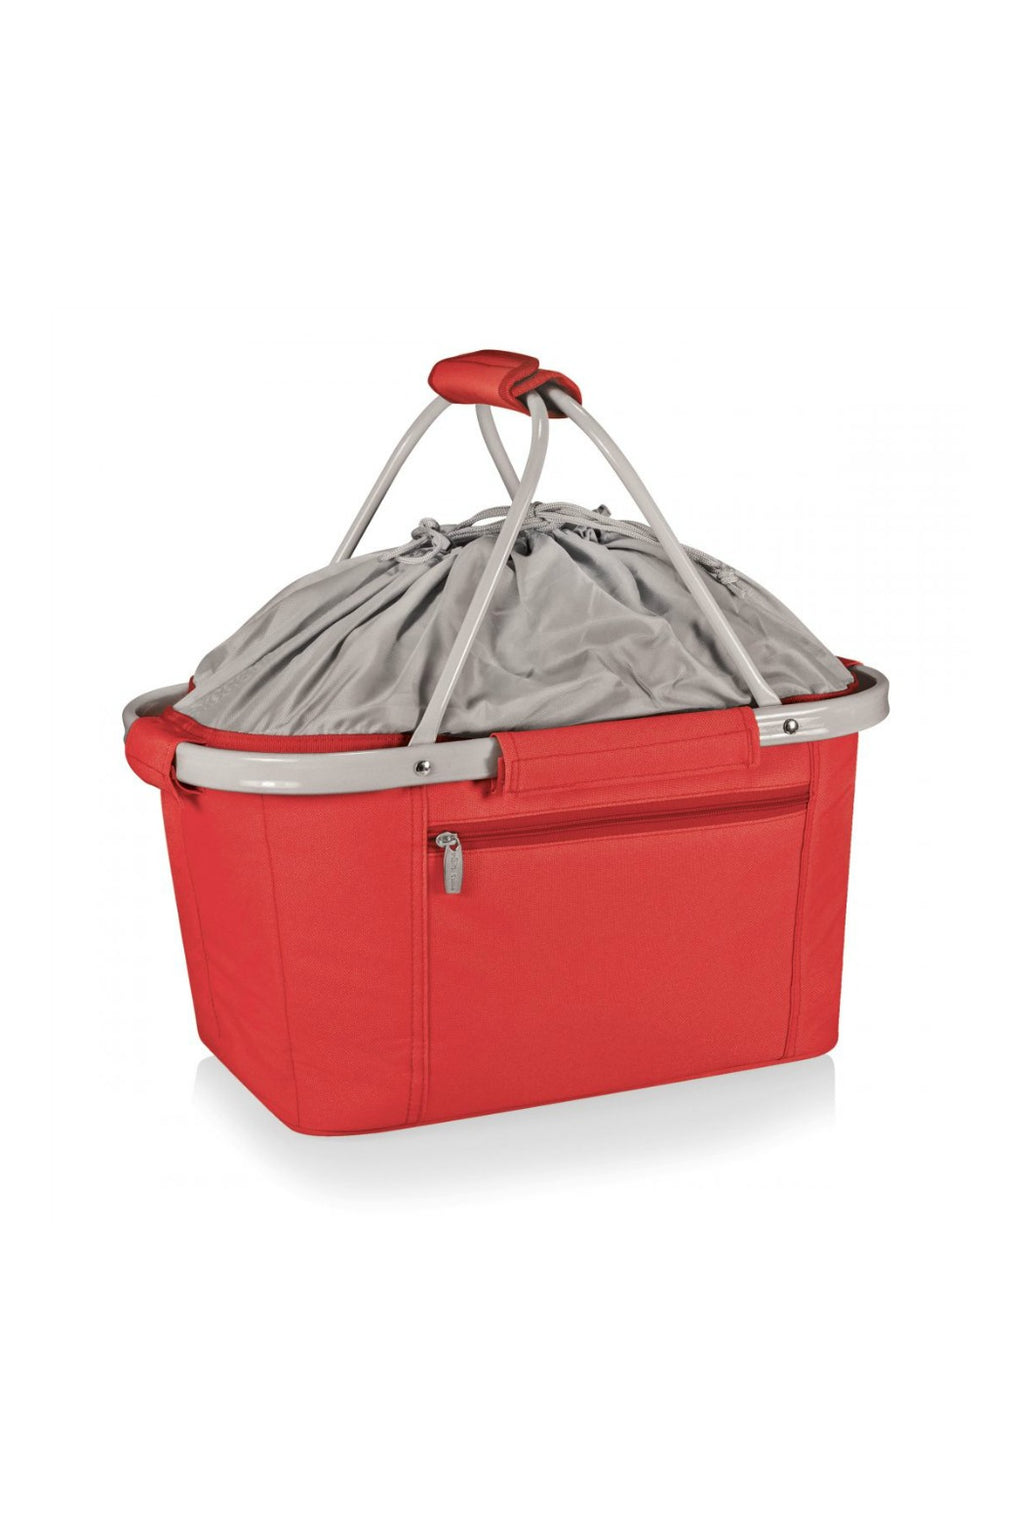 Picnic Time Metro Basket Collapsible Cooler Tote - Red